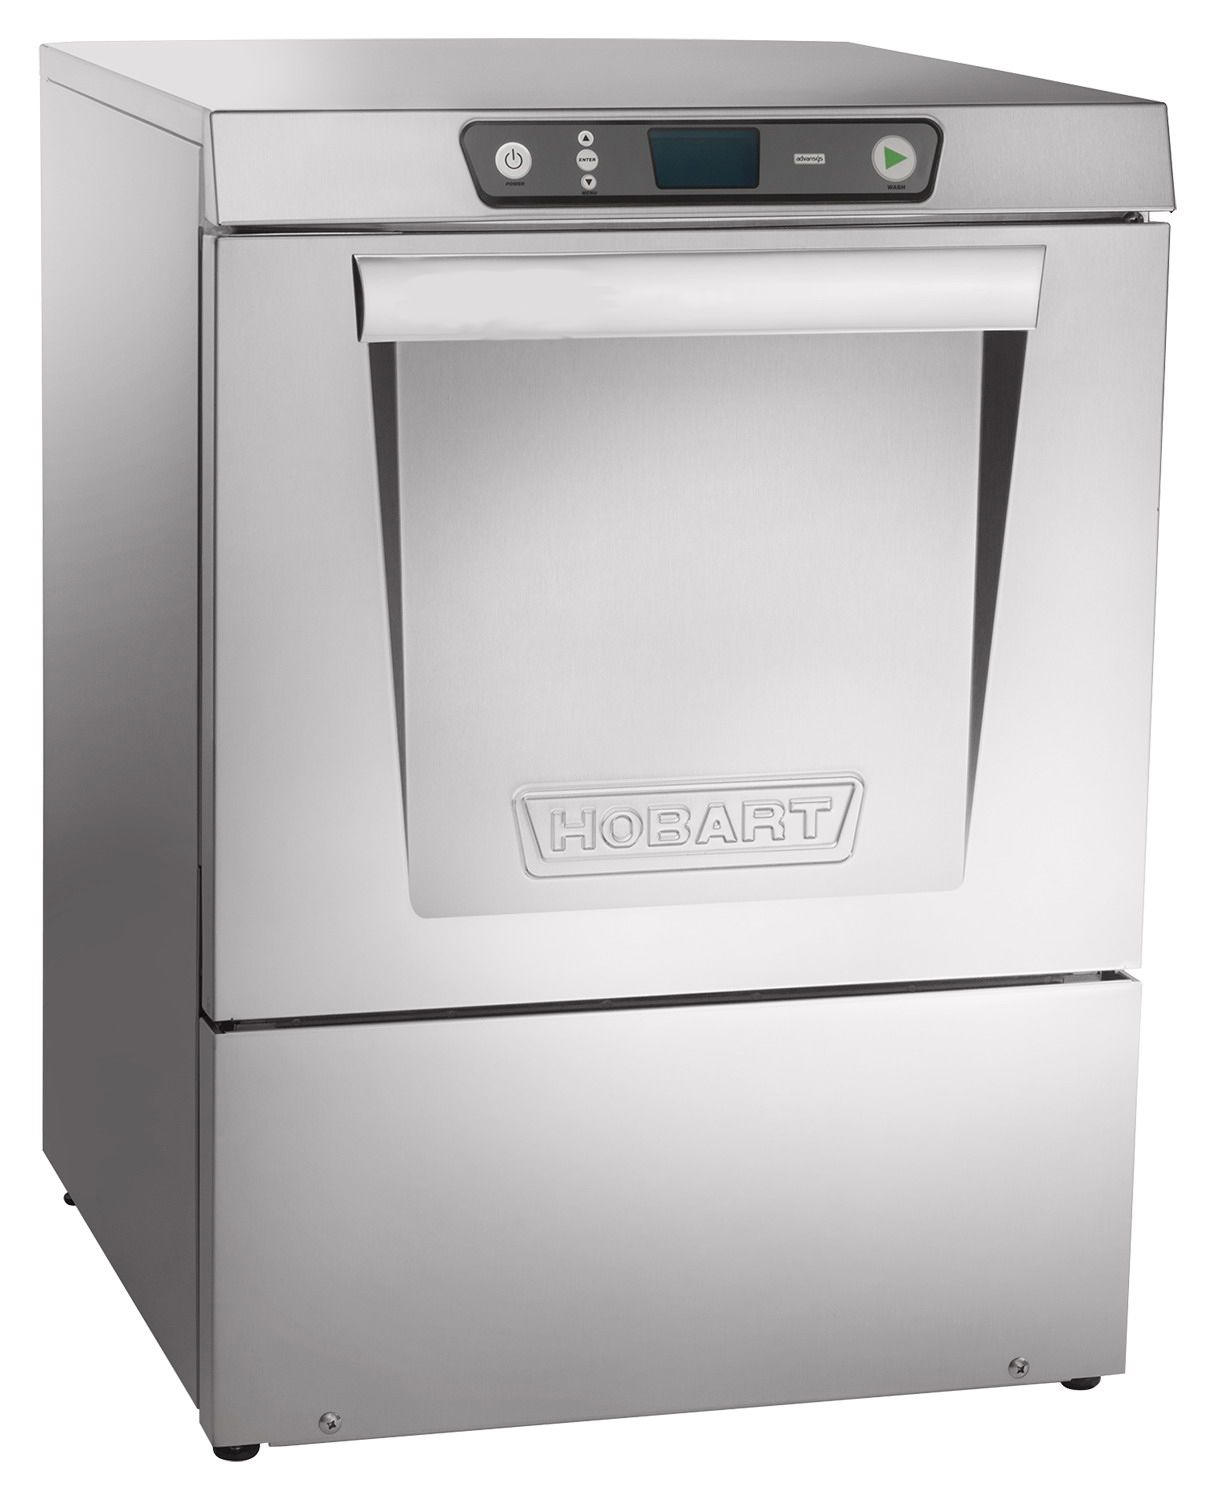 Hobart Advansys Undercounter Dishwasher With A Cold Water Rinse System Specifically Loved By Bar Establishments